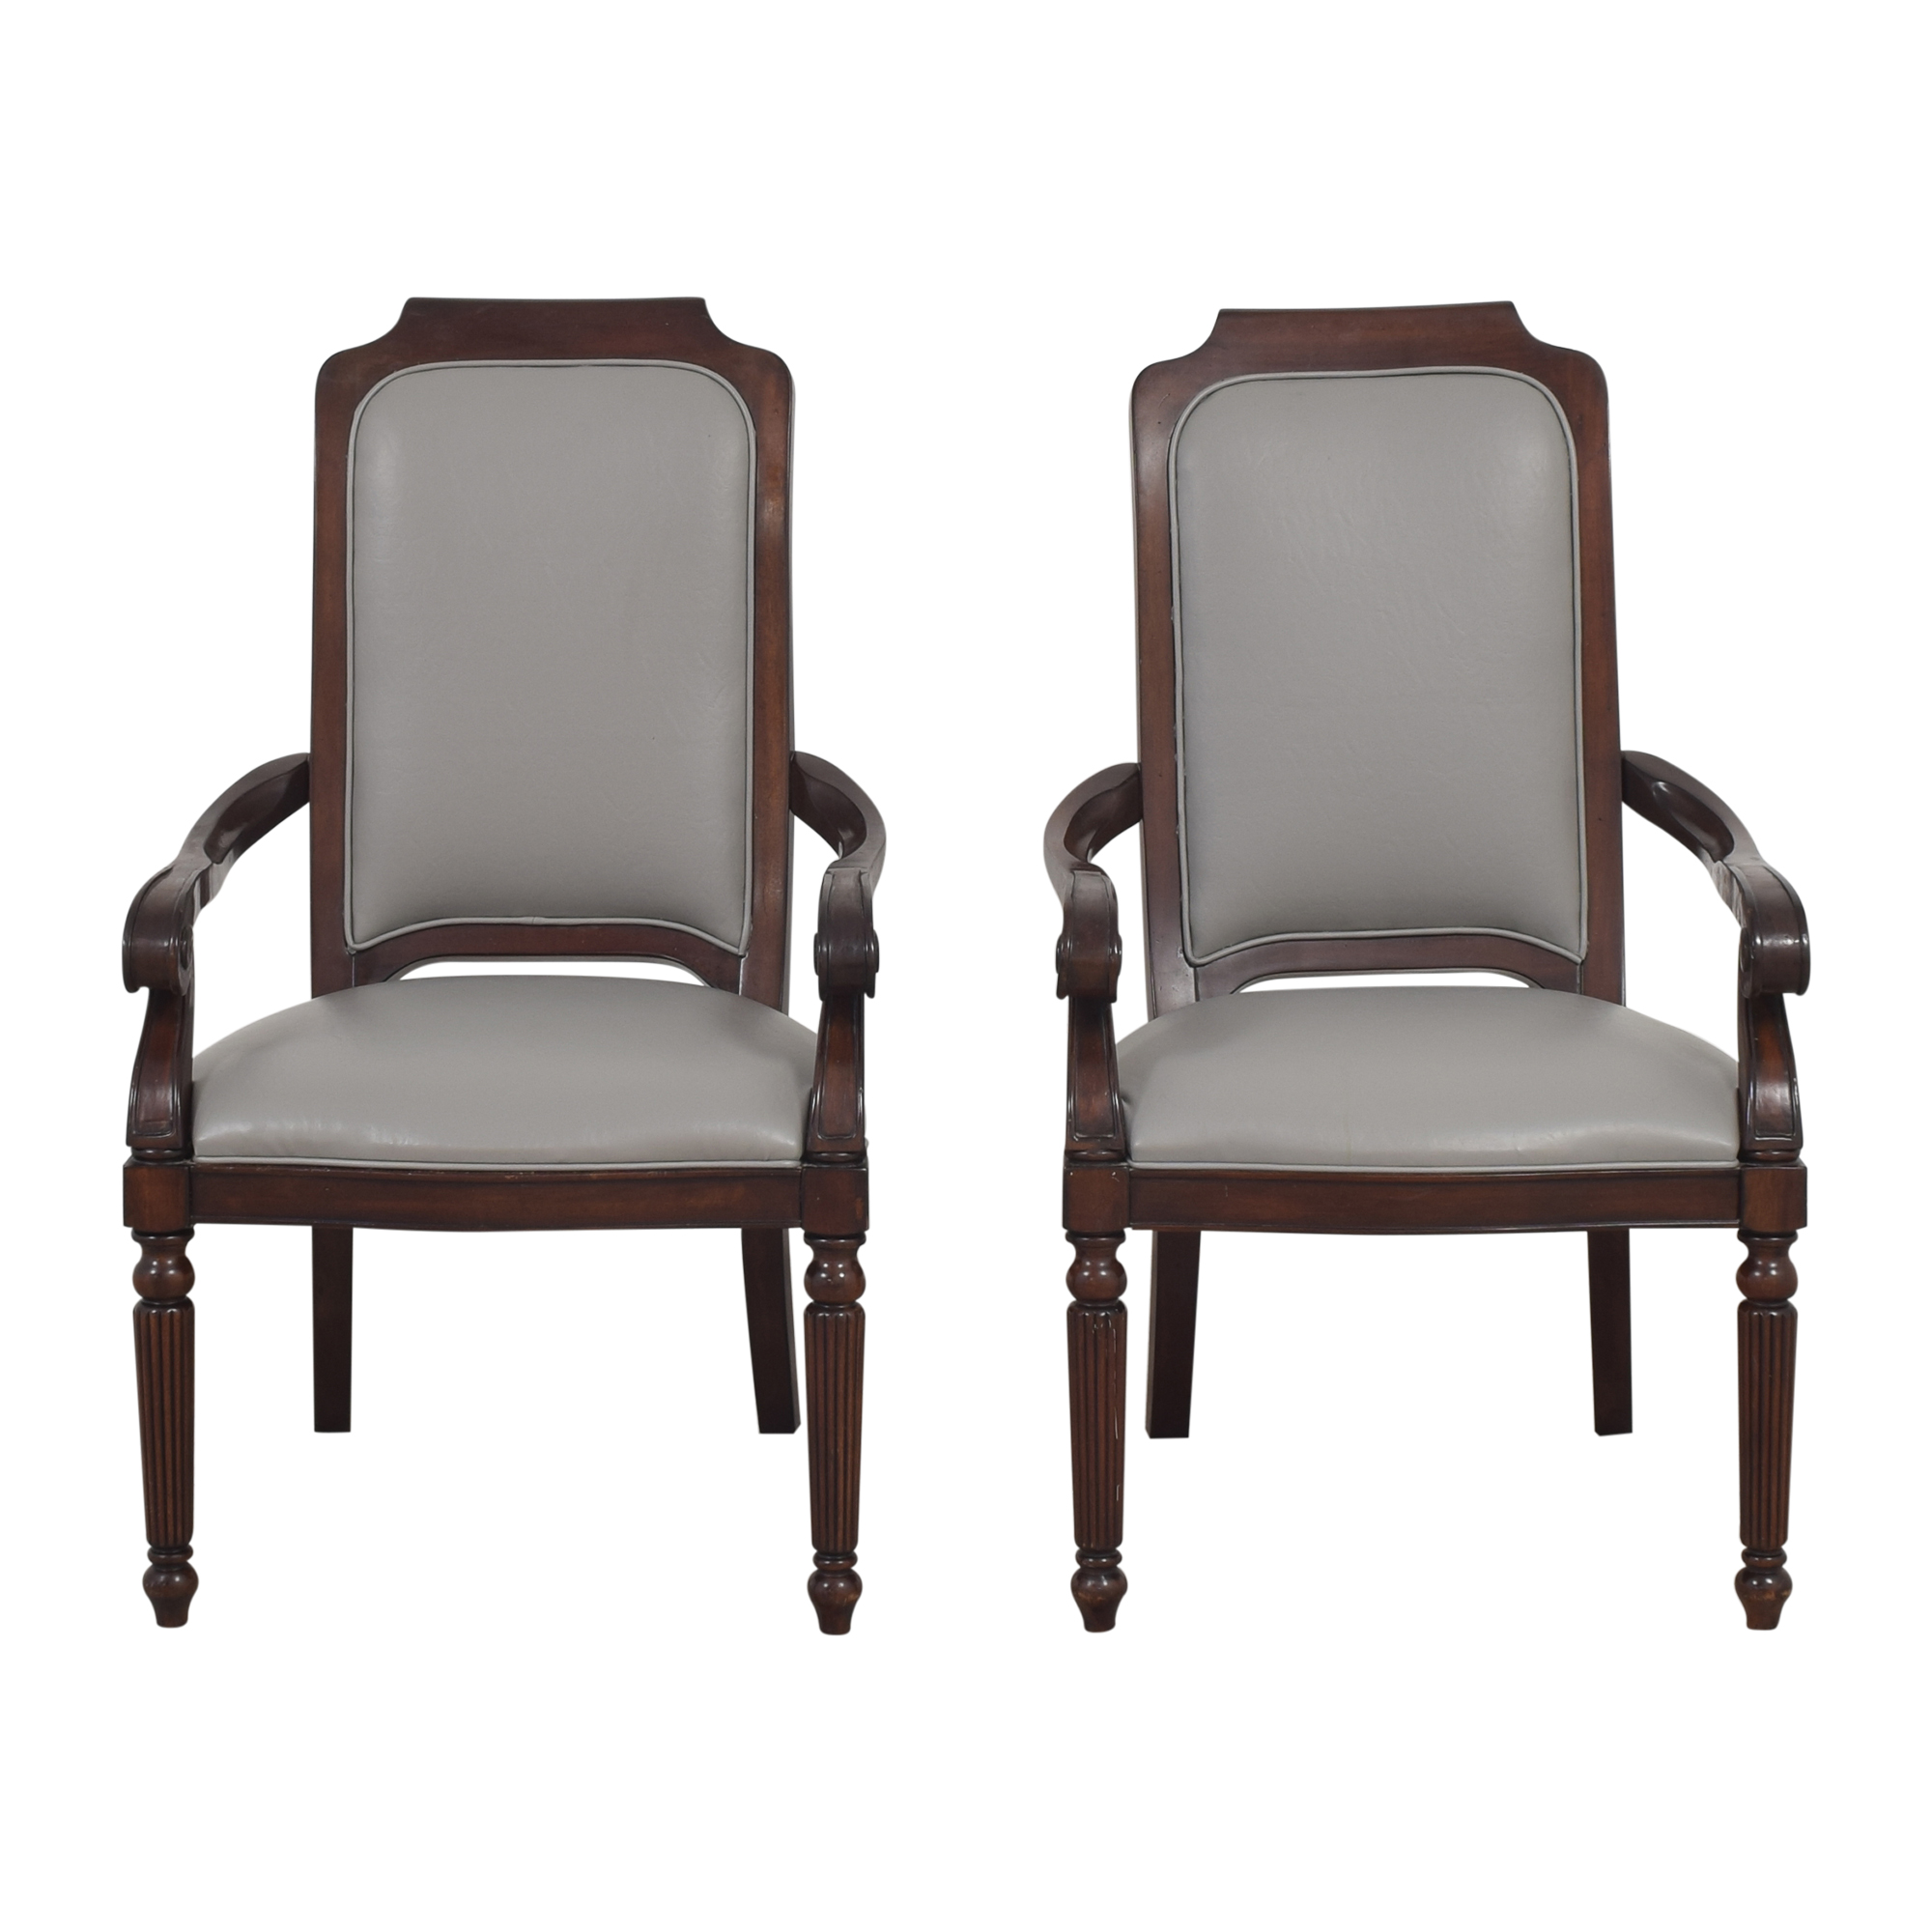 Drexel Heritage Drexel Heritage British Accents Dining Arm Chairs Chairs